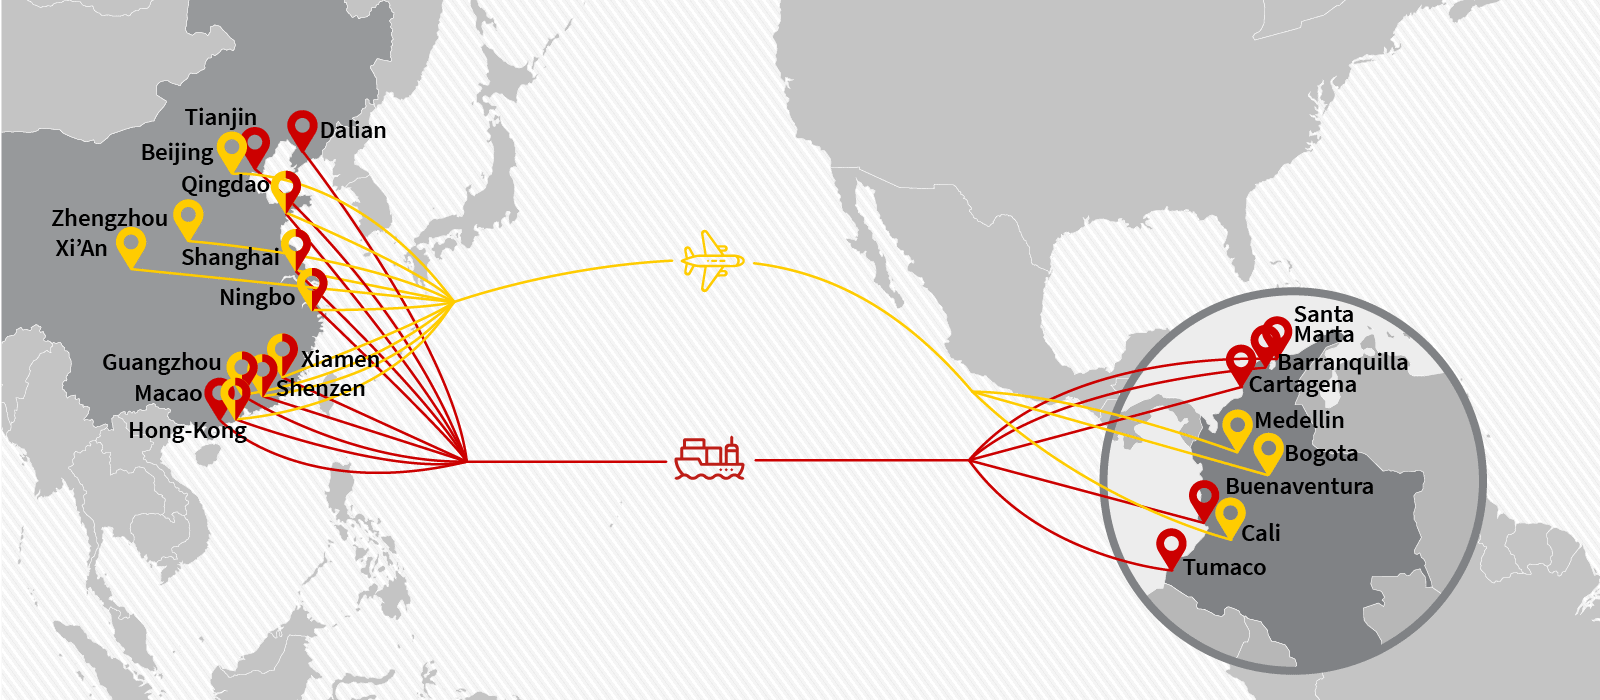 Cargo & freight shipping from China to Colombia by Air Charter or Ocean Container - Main POL, POD & Routes